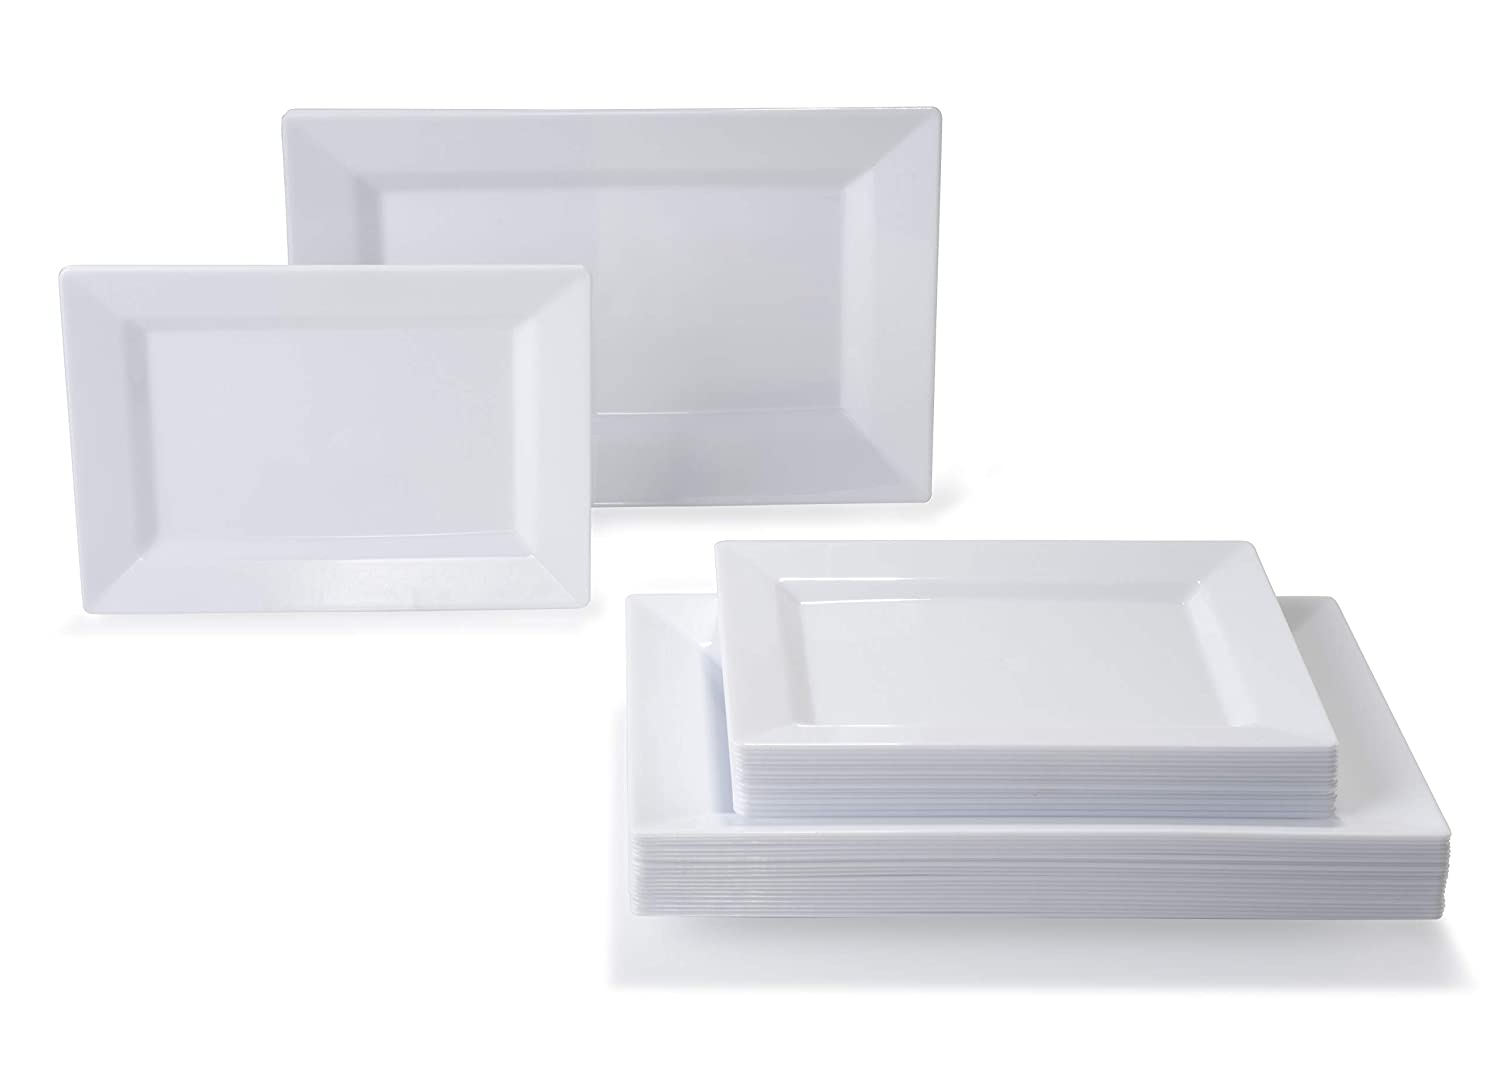 Soho, White 50 piece set (25 guests) 360 PIECE   60 guest  OCCASIONS  Wedding Disposable Plastic Plate and Silverware Combo (White Silver rim plates)